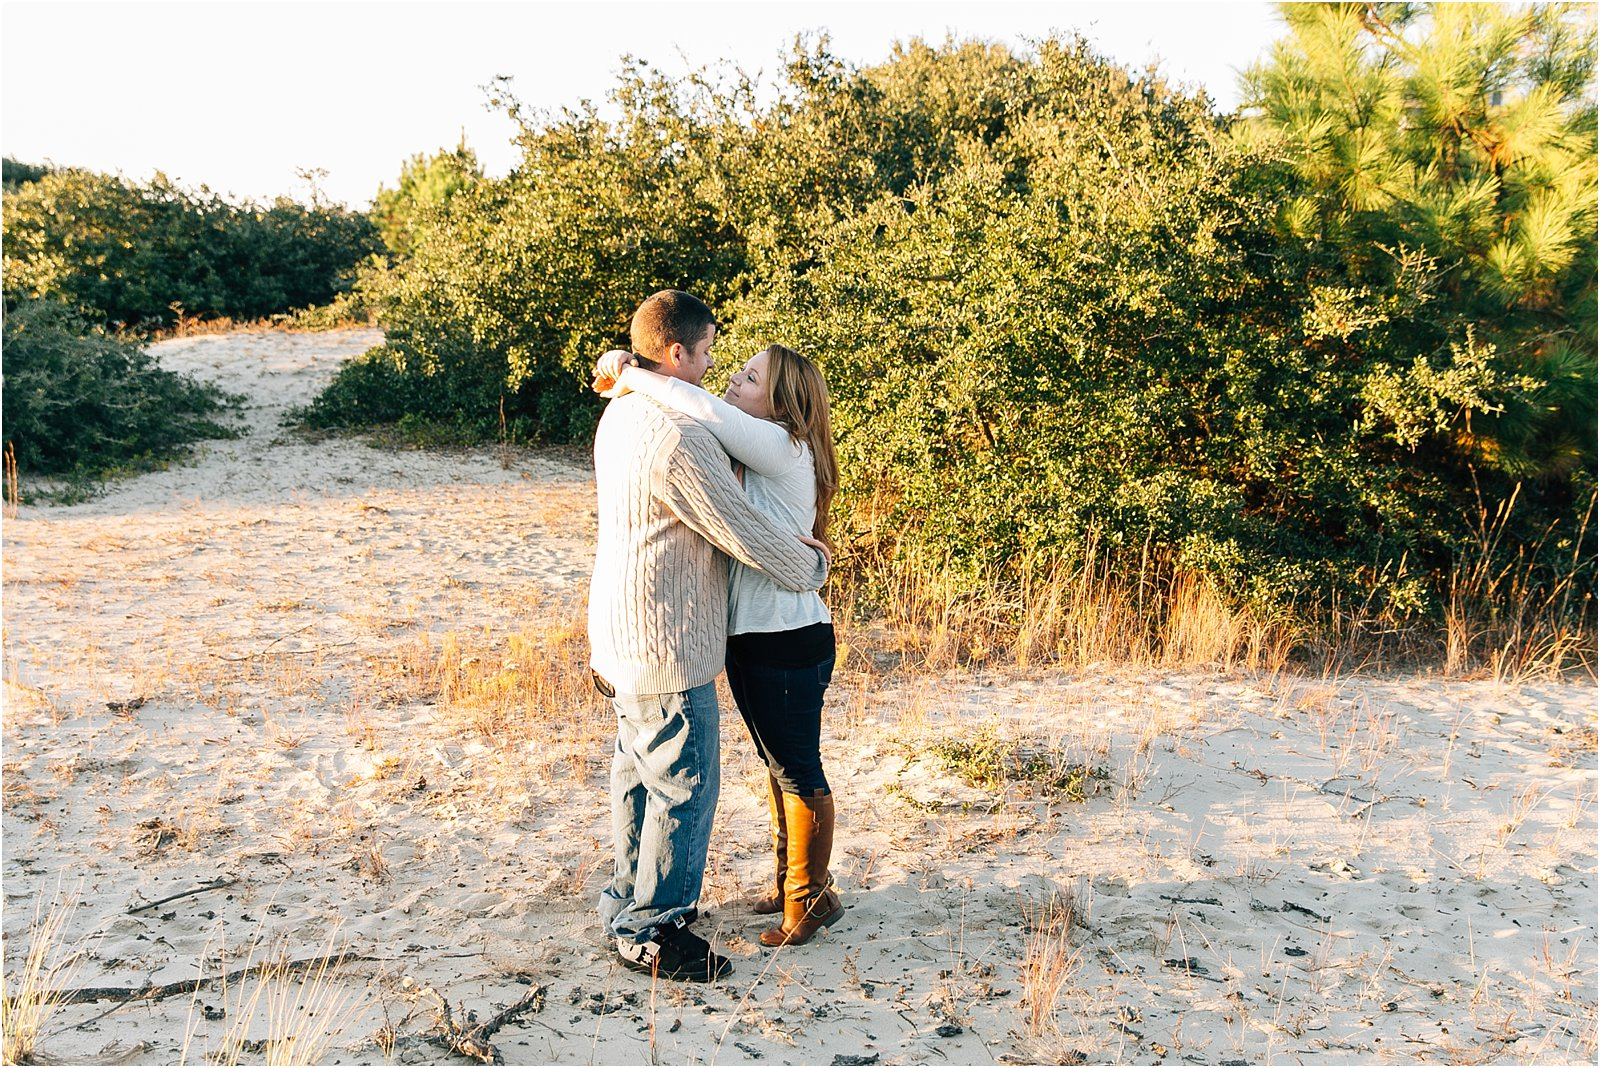 jessica_ryan_photography_pumpkin_patch_engagement_portraits_fall_october_engagements_virginia_beach_chesapeake_0320